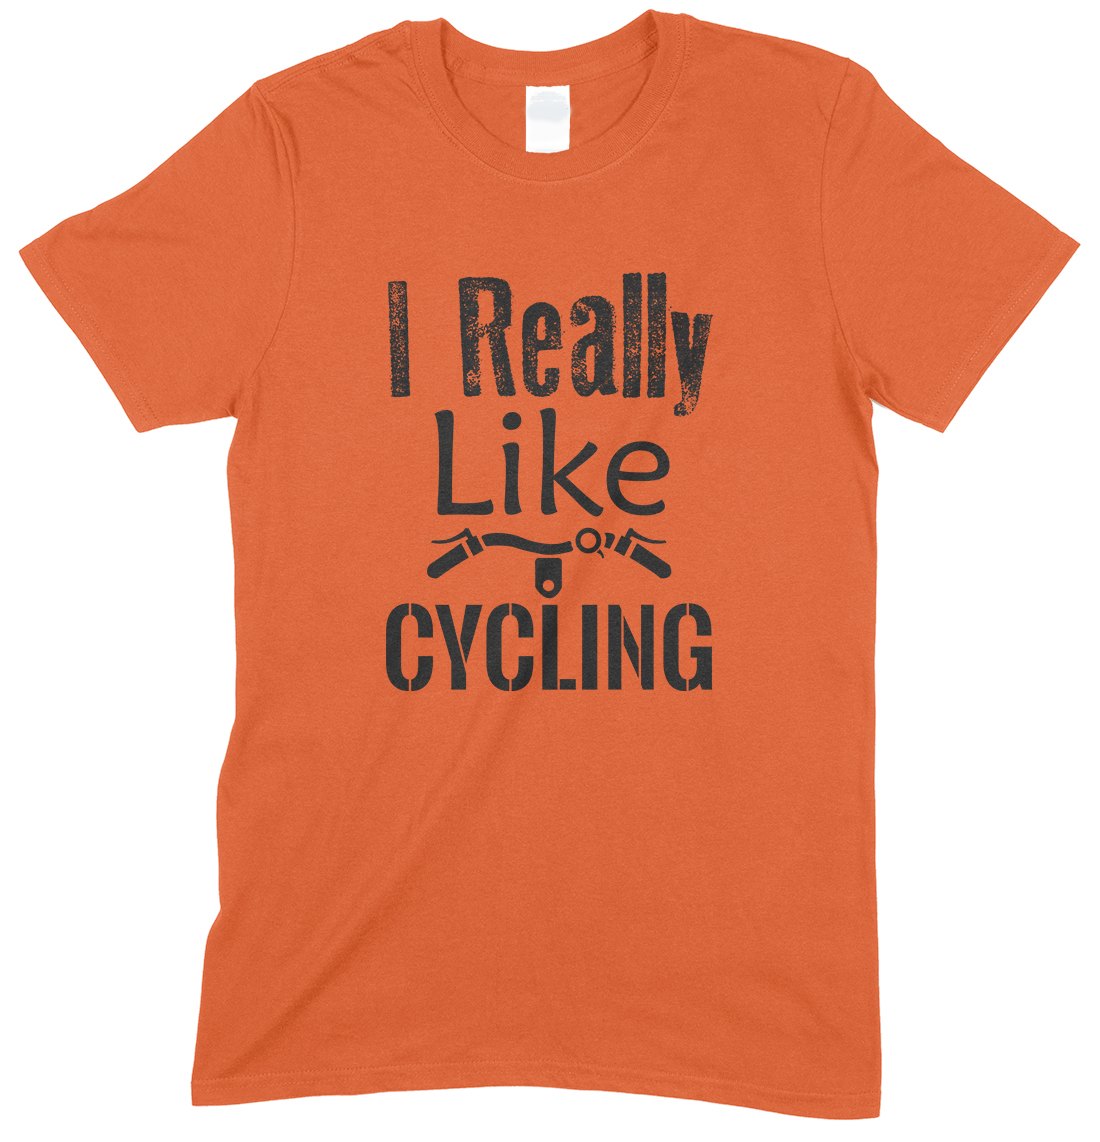 I Really Like Cycling-Unisex Adults T Shirt